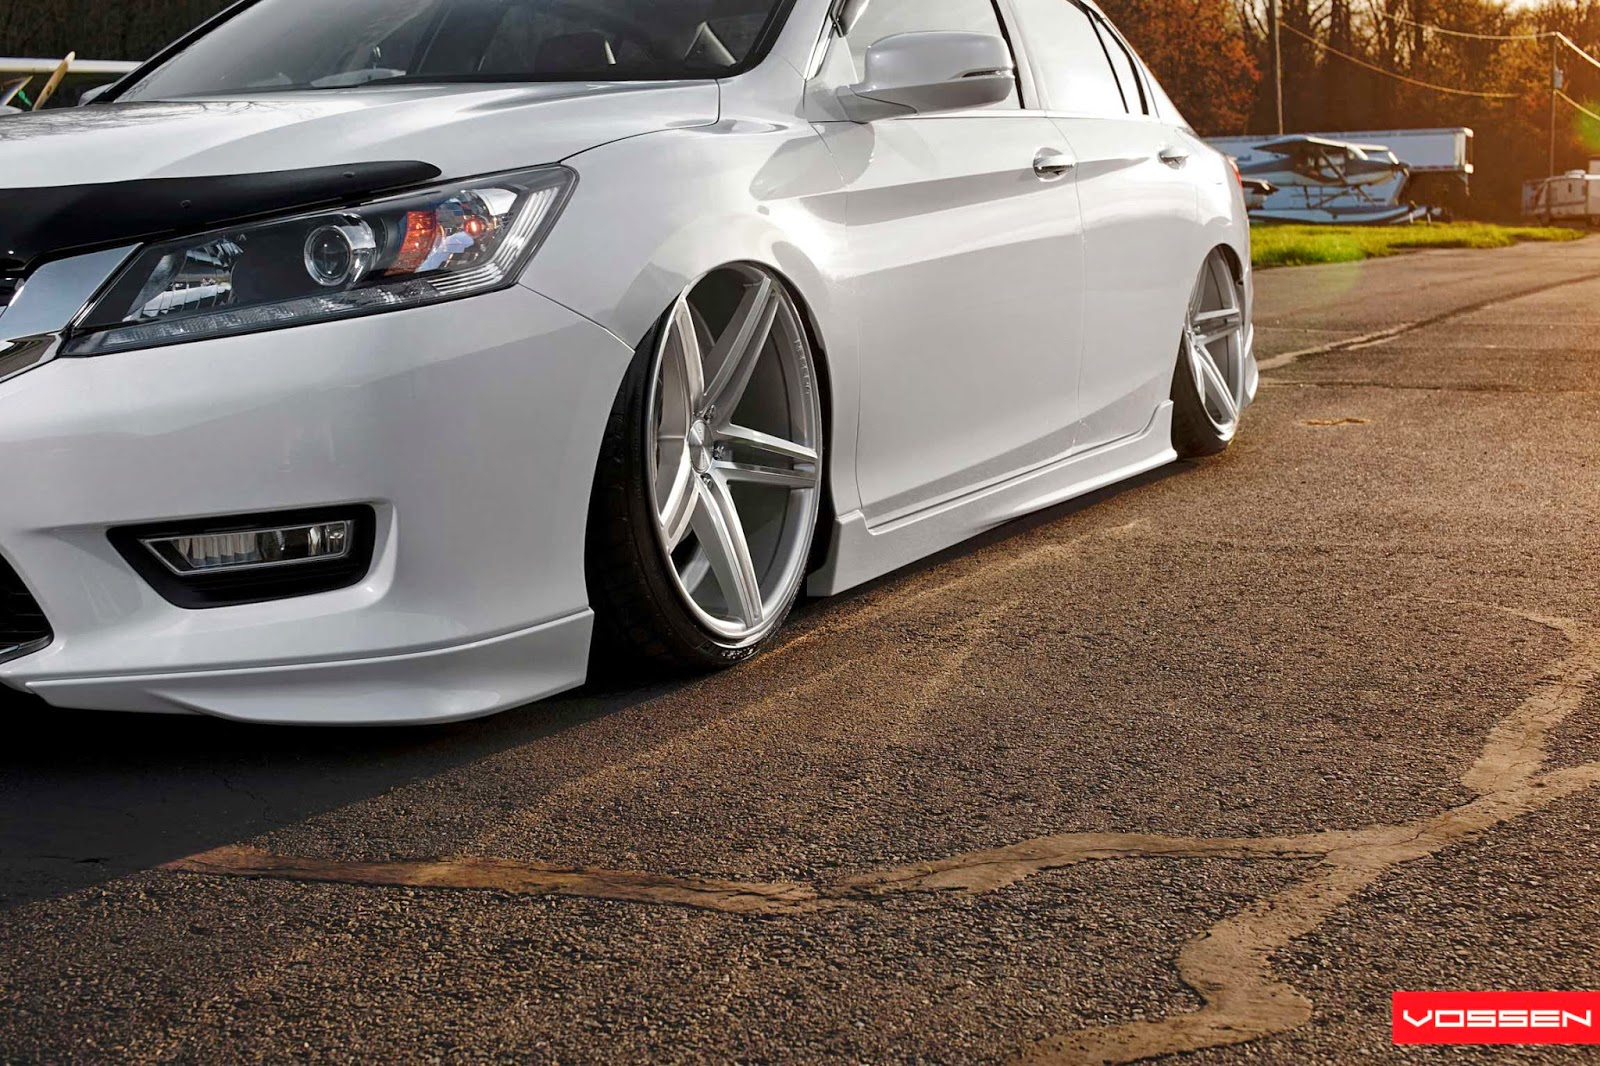 Lowered Honda Accord Lowered Honda Accord on Vvscv5